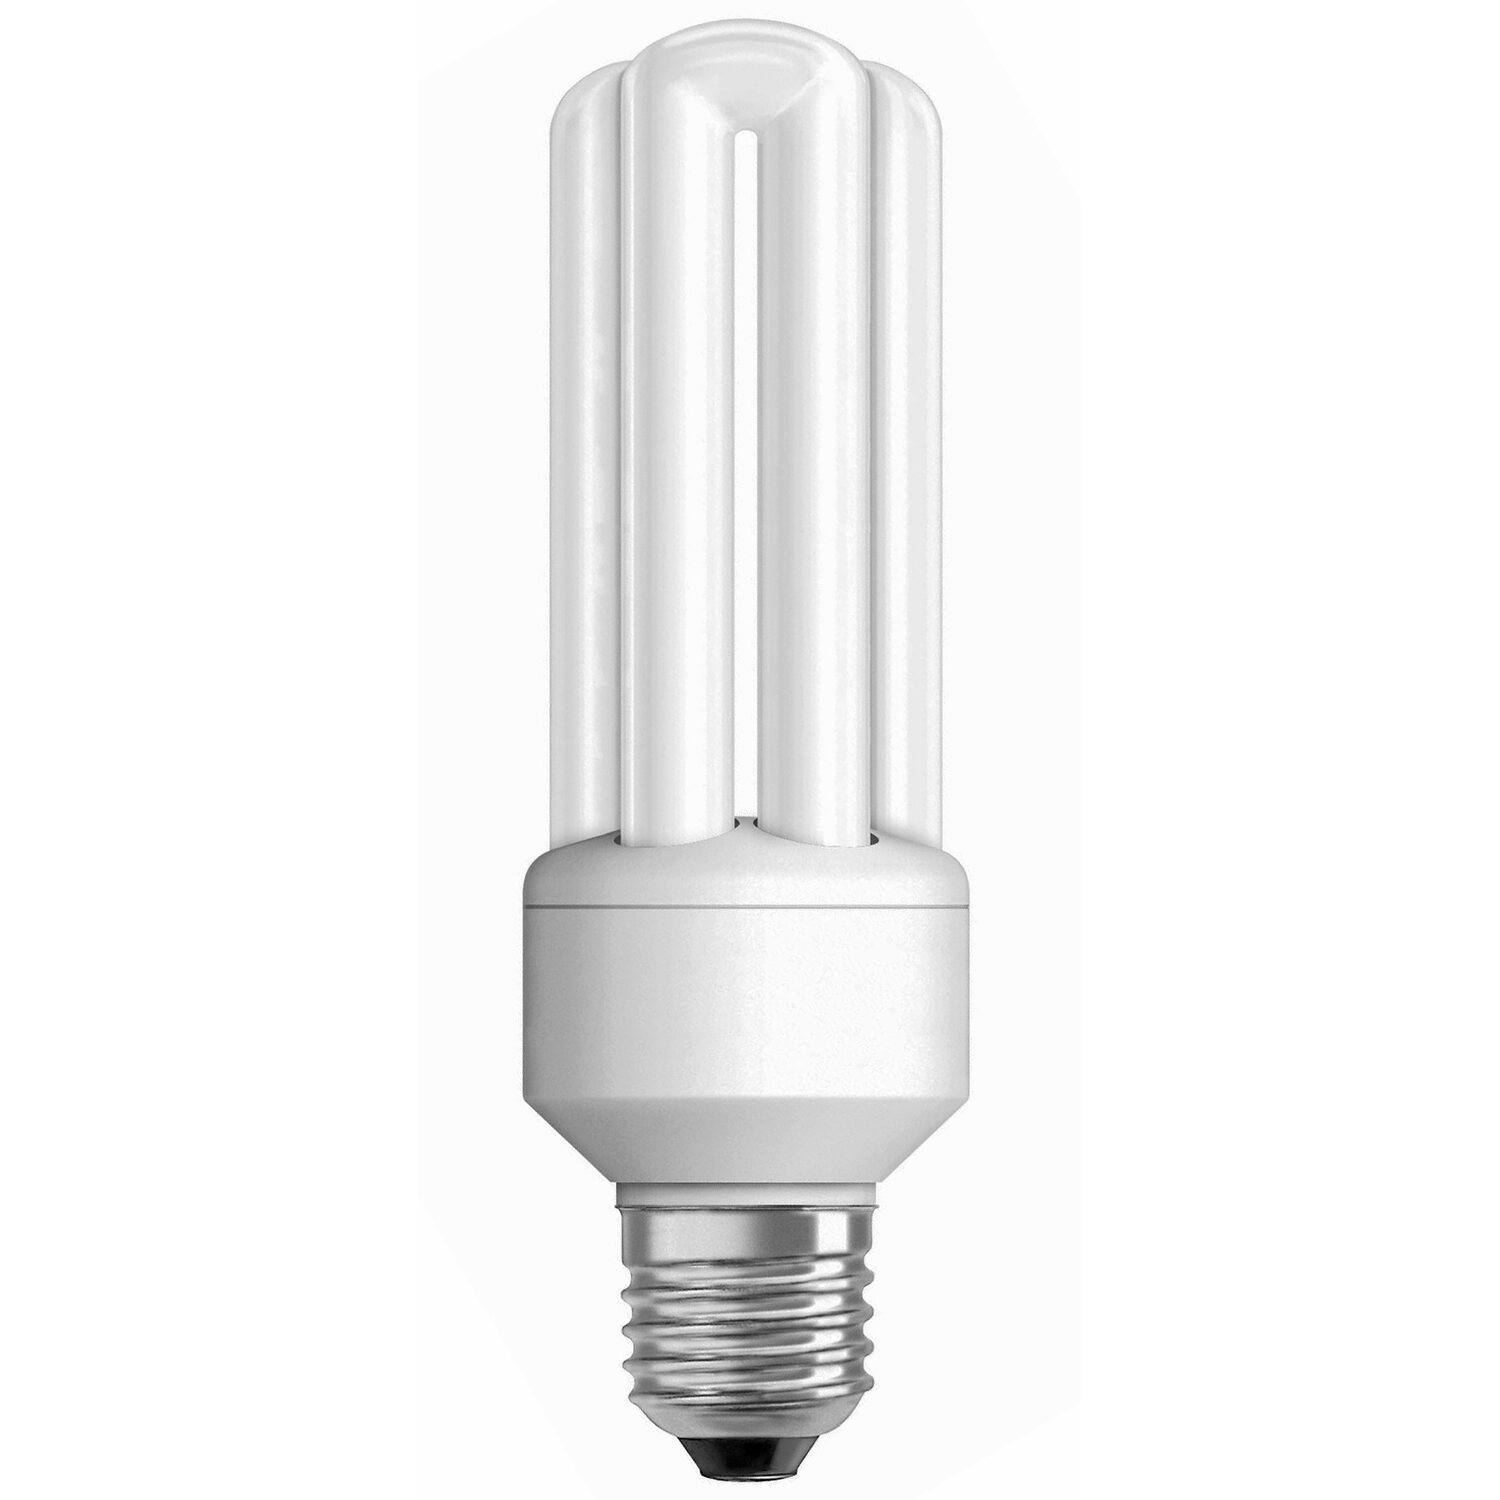 Osram Energiesparlampe Stabform E27 / 20 W (116...